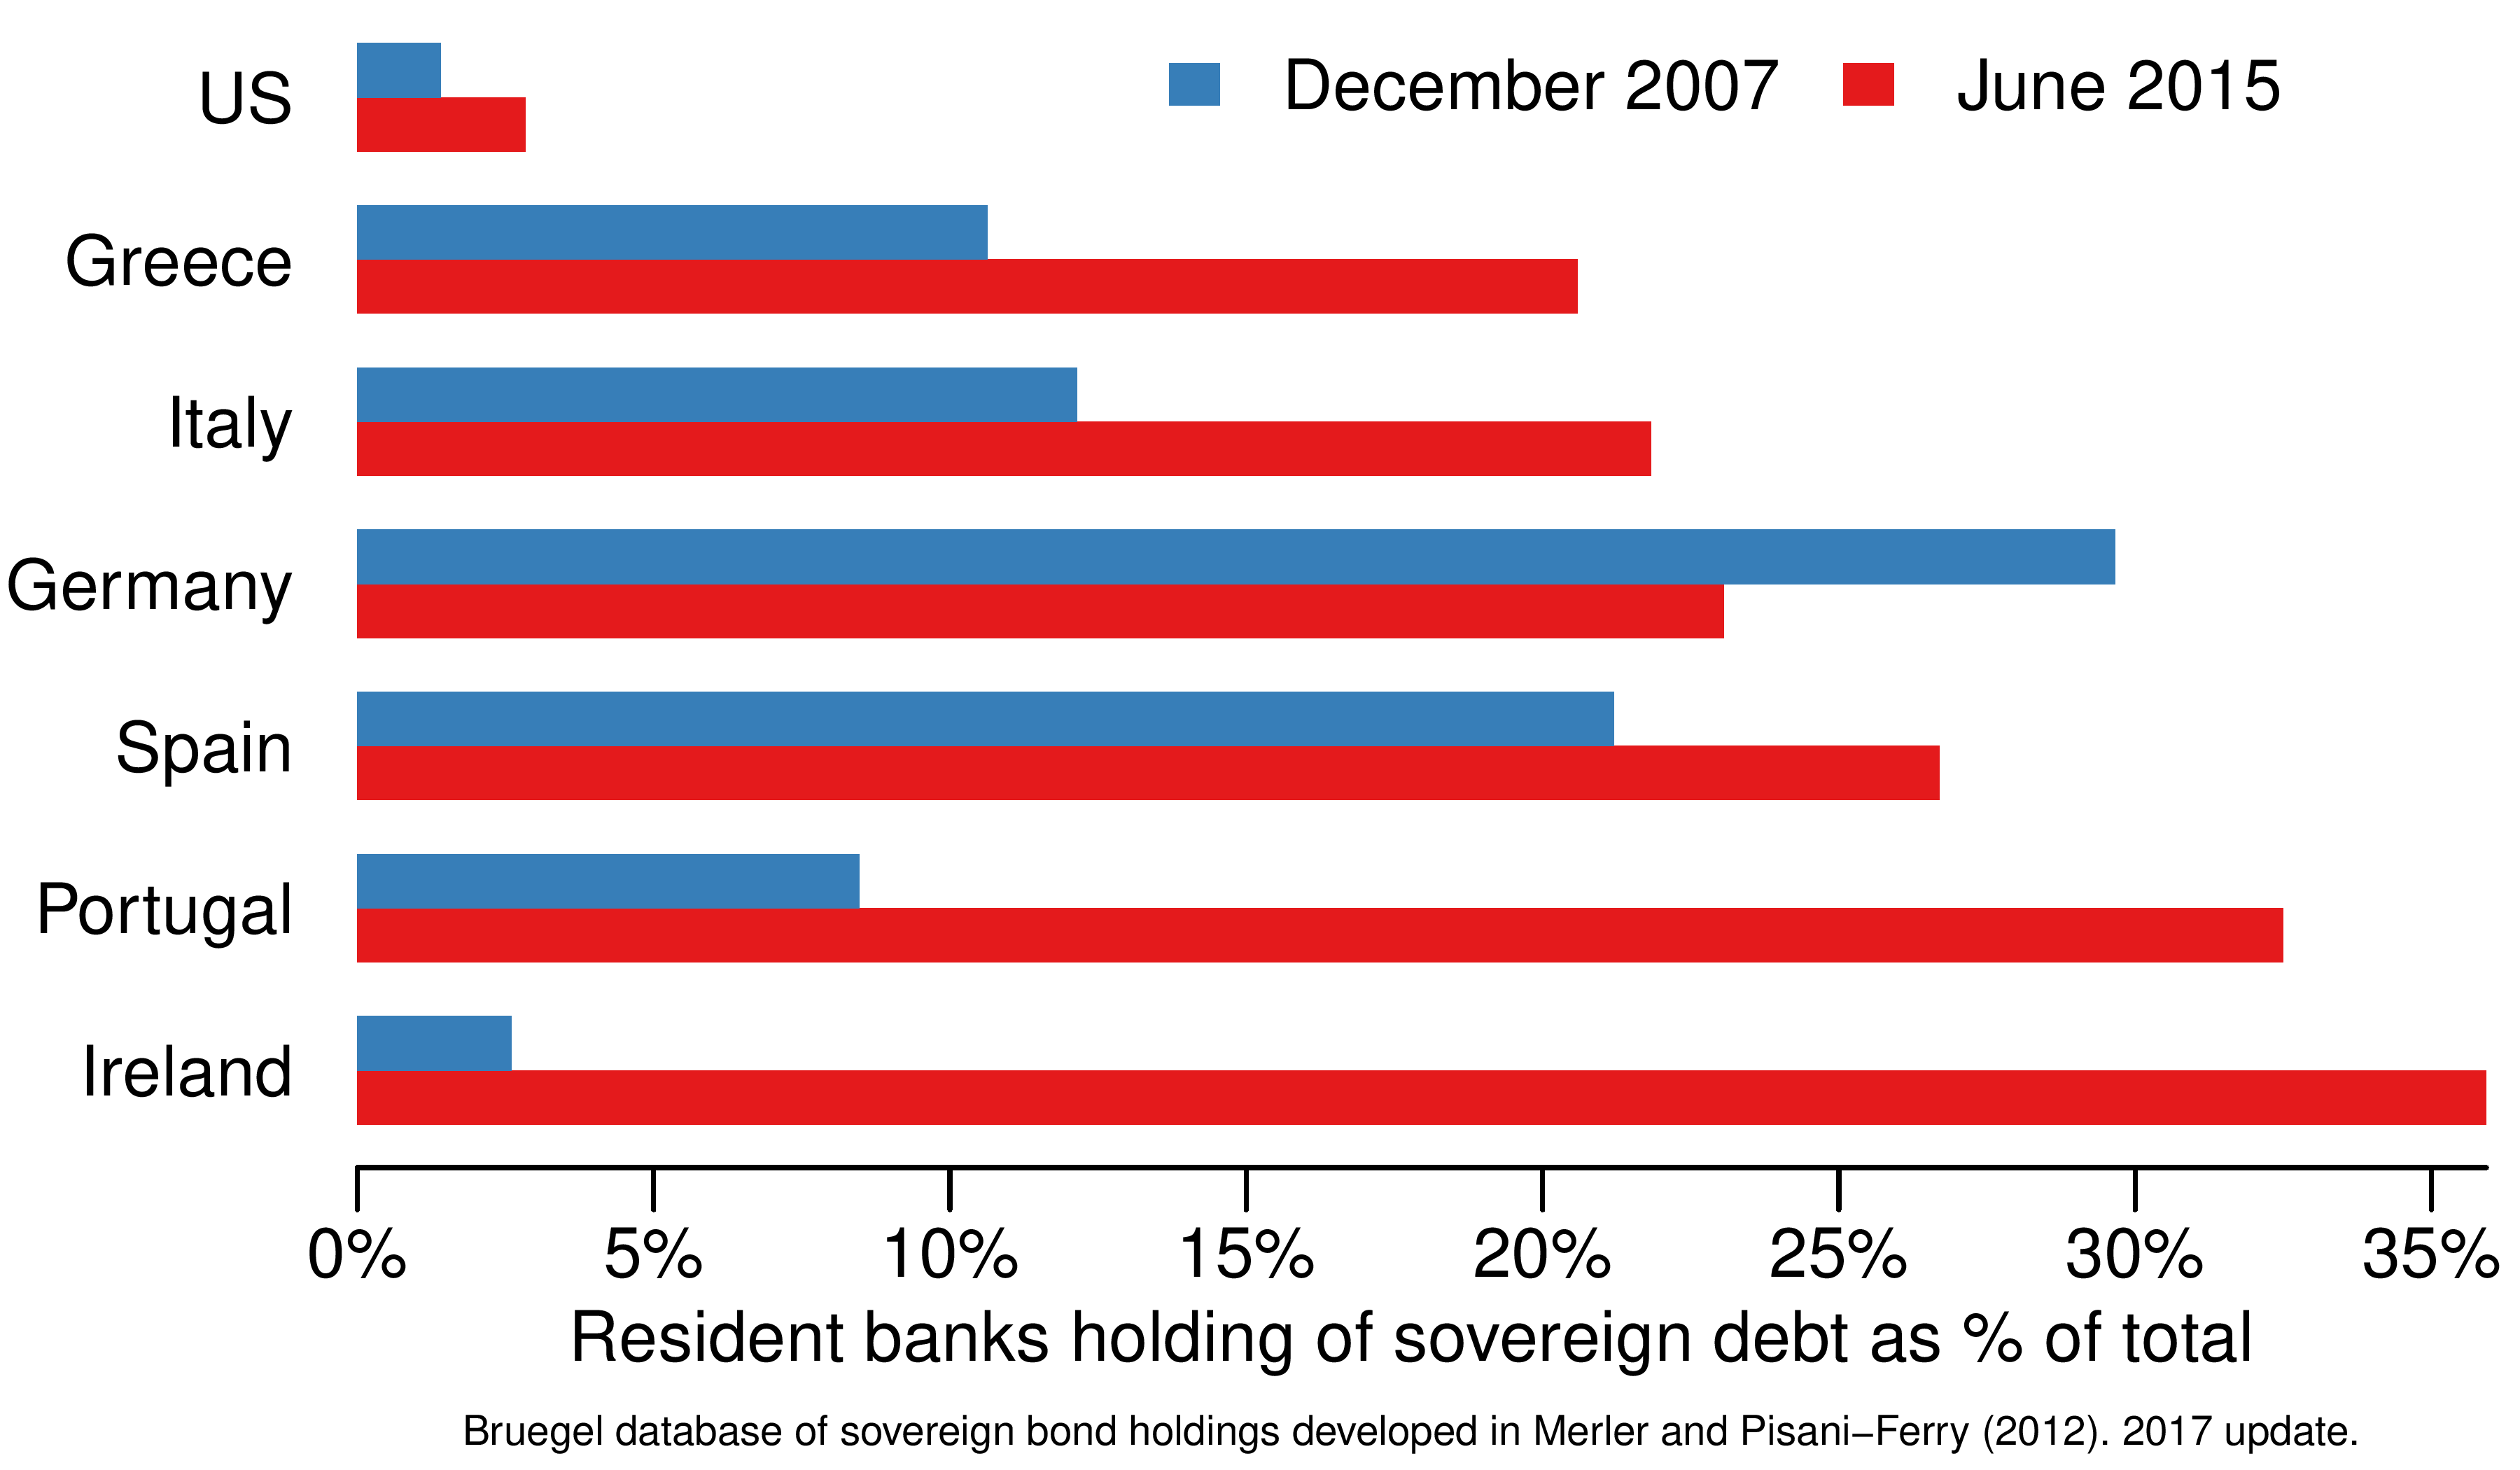 Bank sovereign debt holdings